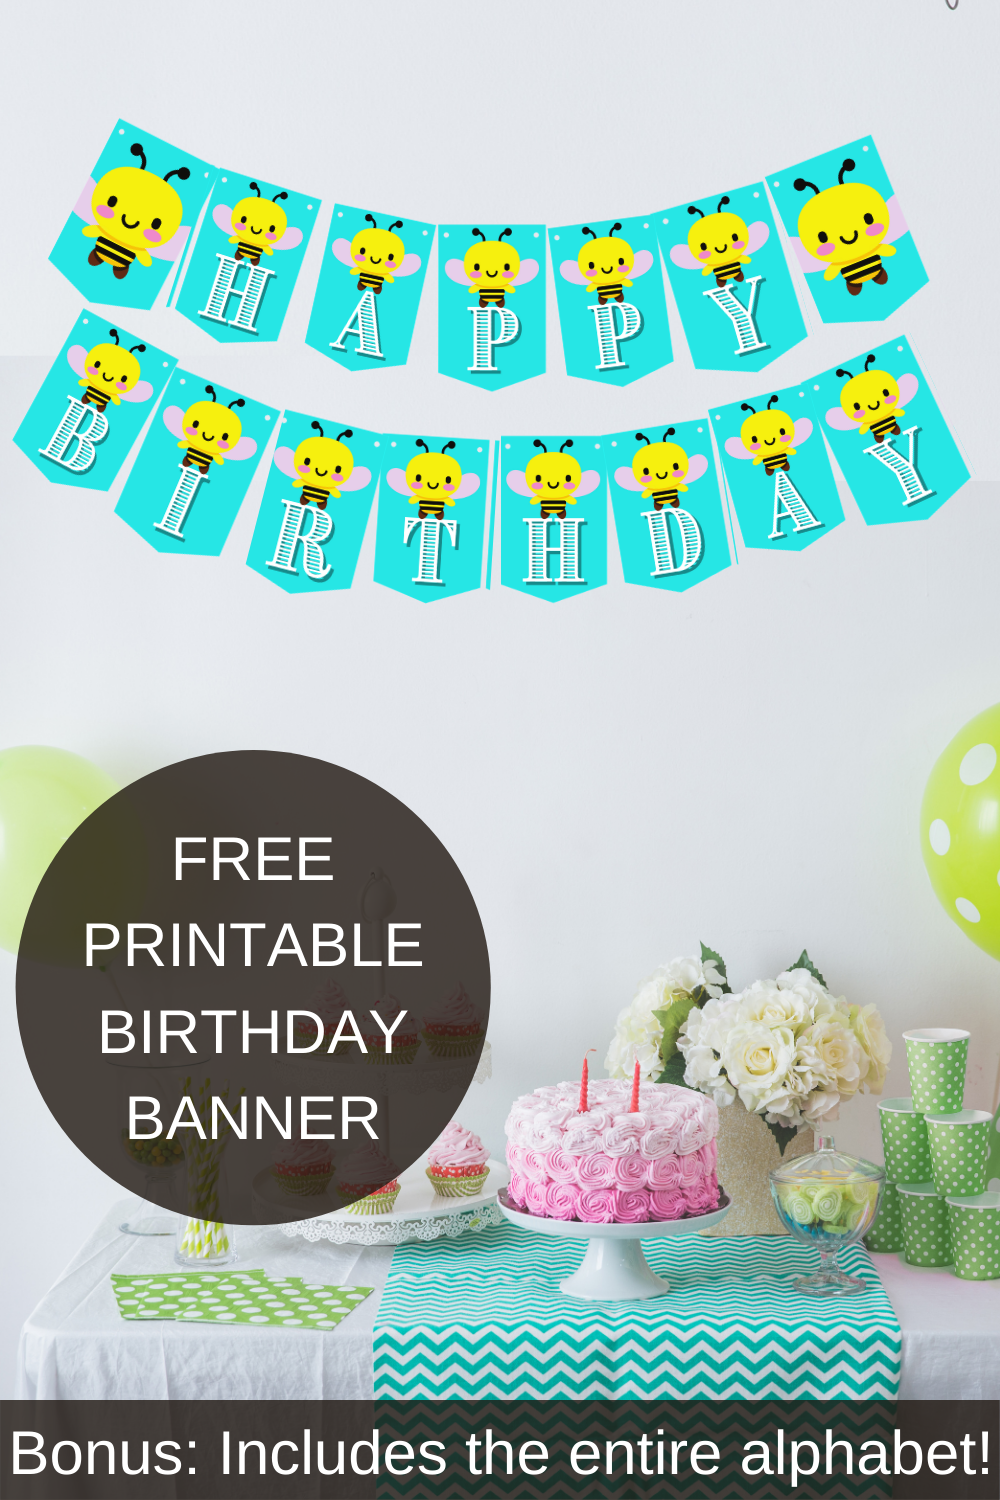 Freebie happy birthday bumble banner and customizable alphabet banner